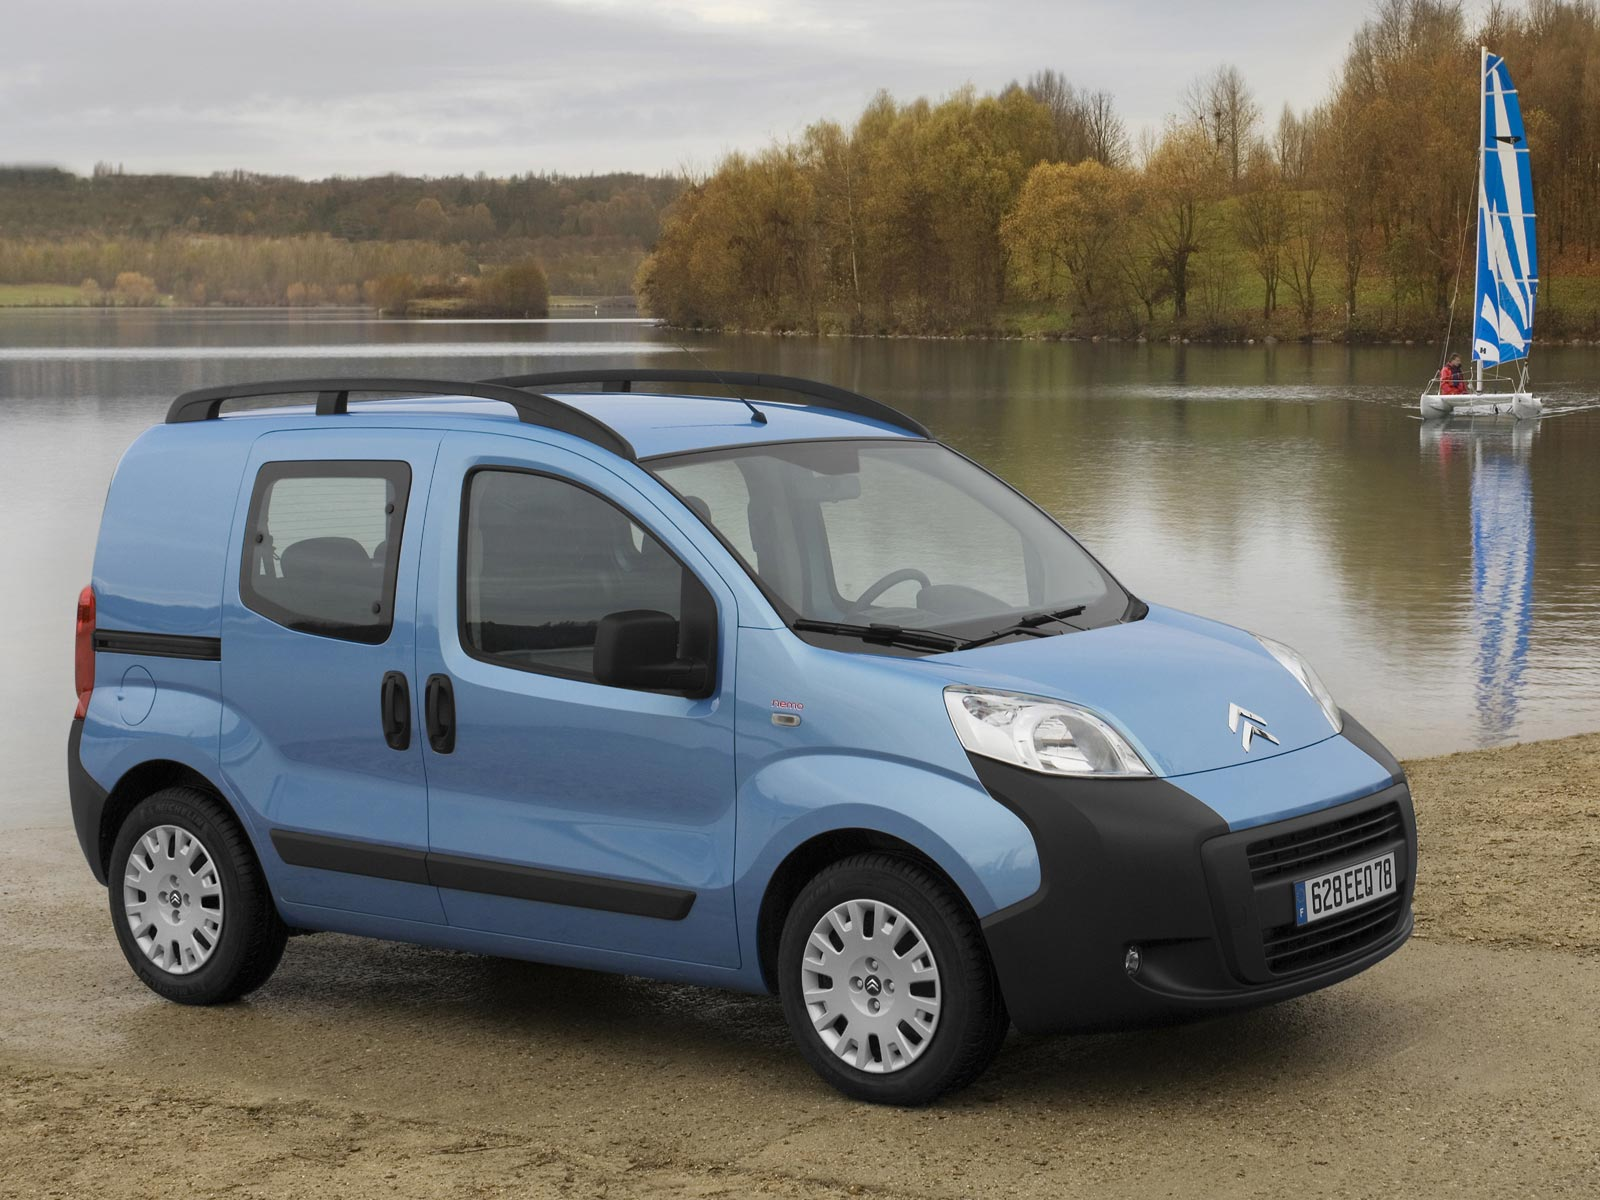 wallpapers of beautiful cars citroen nemo aka peugeot bipper aka fiat fiorino. Black Bedroom Furniture Sets. Home Design Ideas